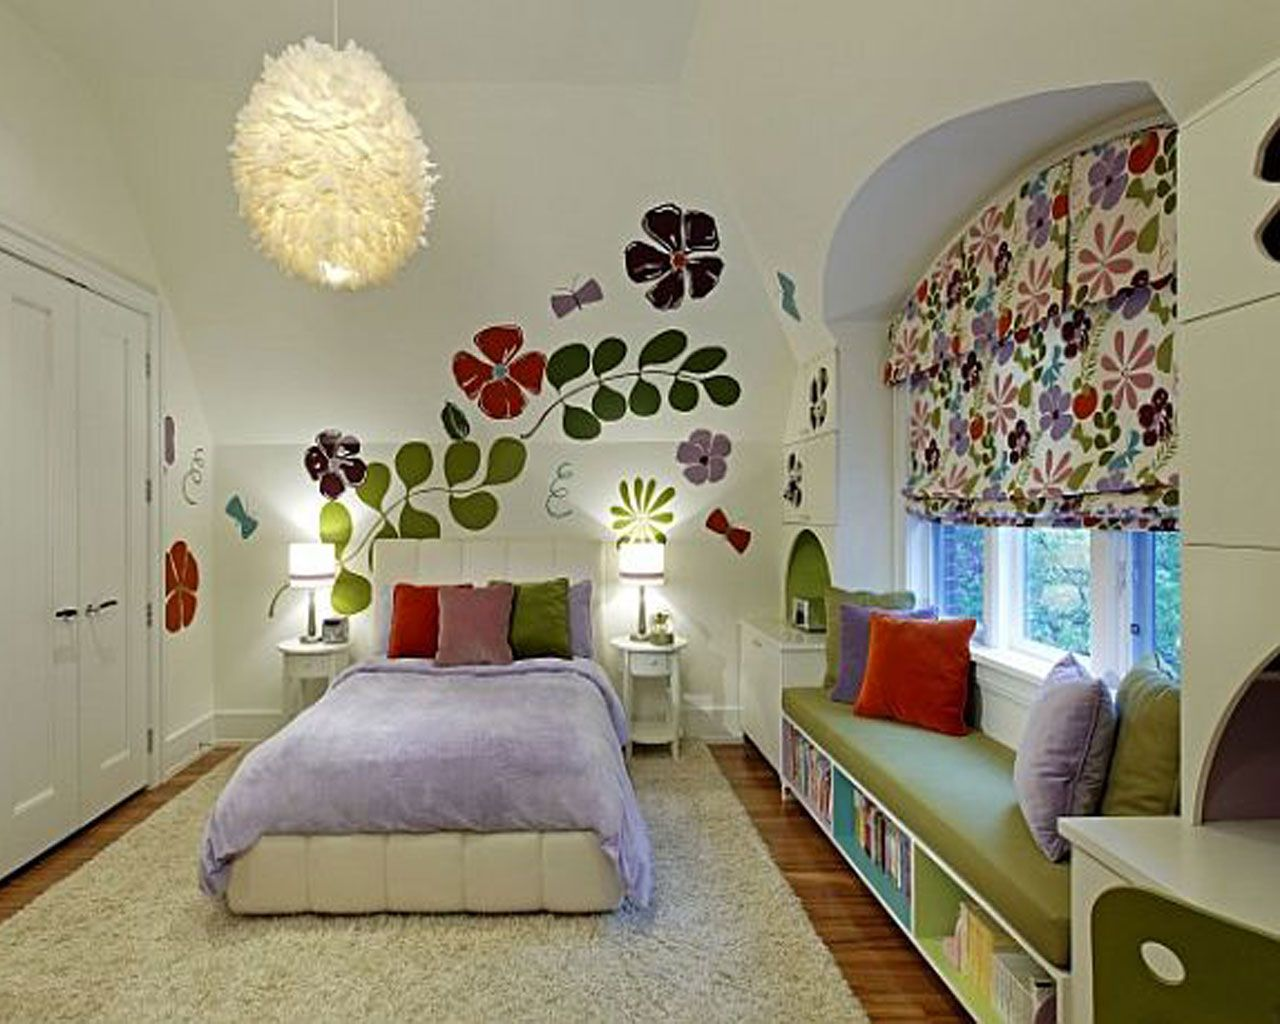 Childrens Bedroom Wall Designs New Wall Art For Kids Room  Google Search  Ideas For The House Review